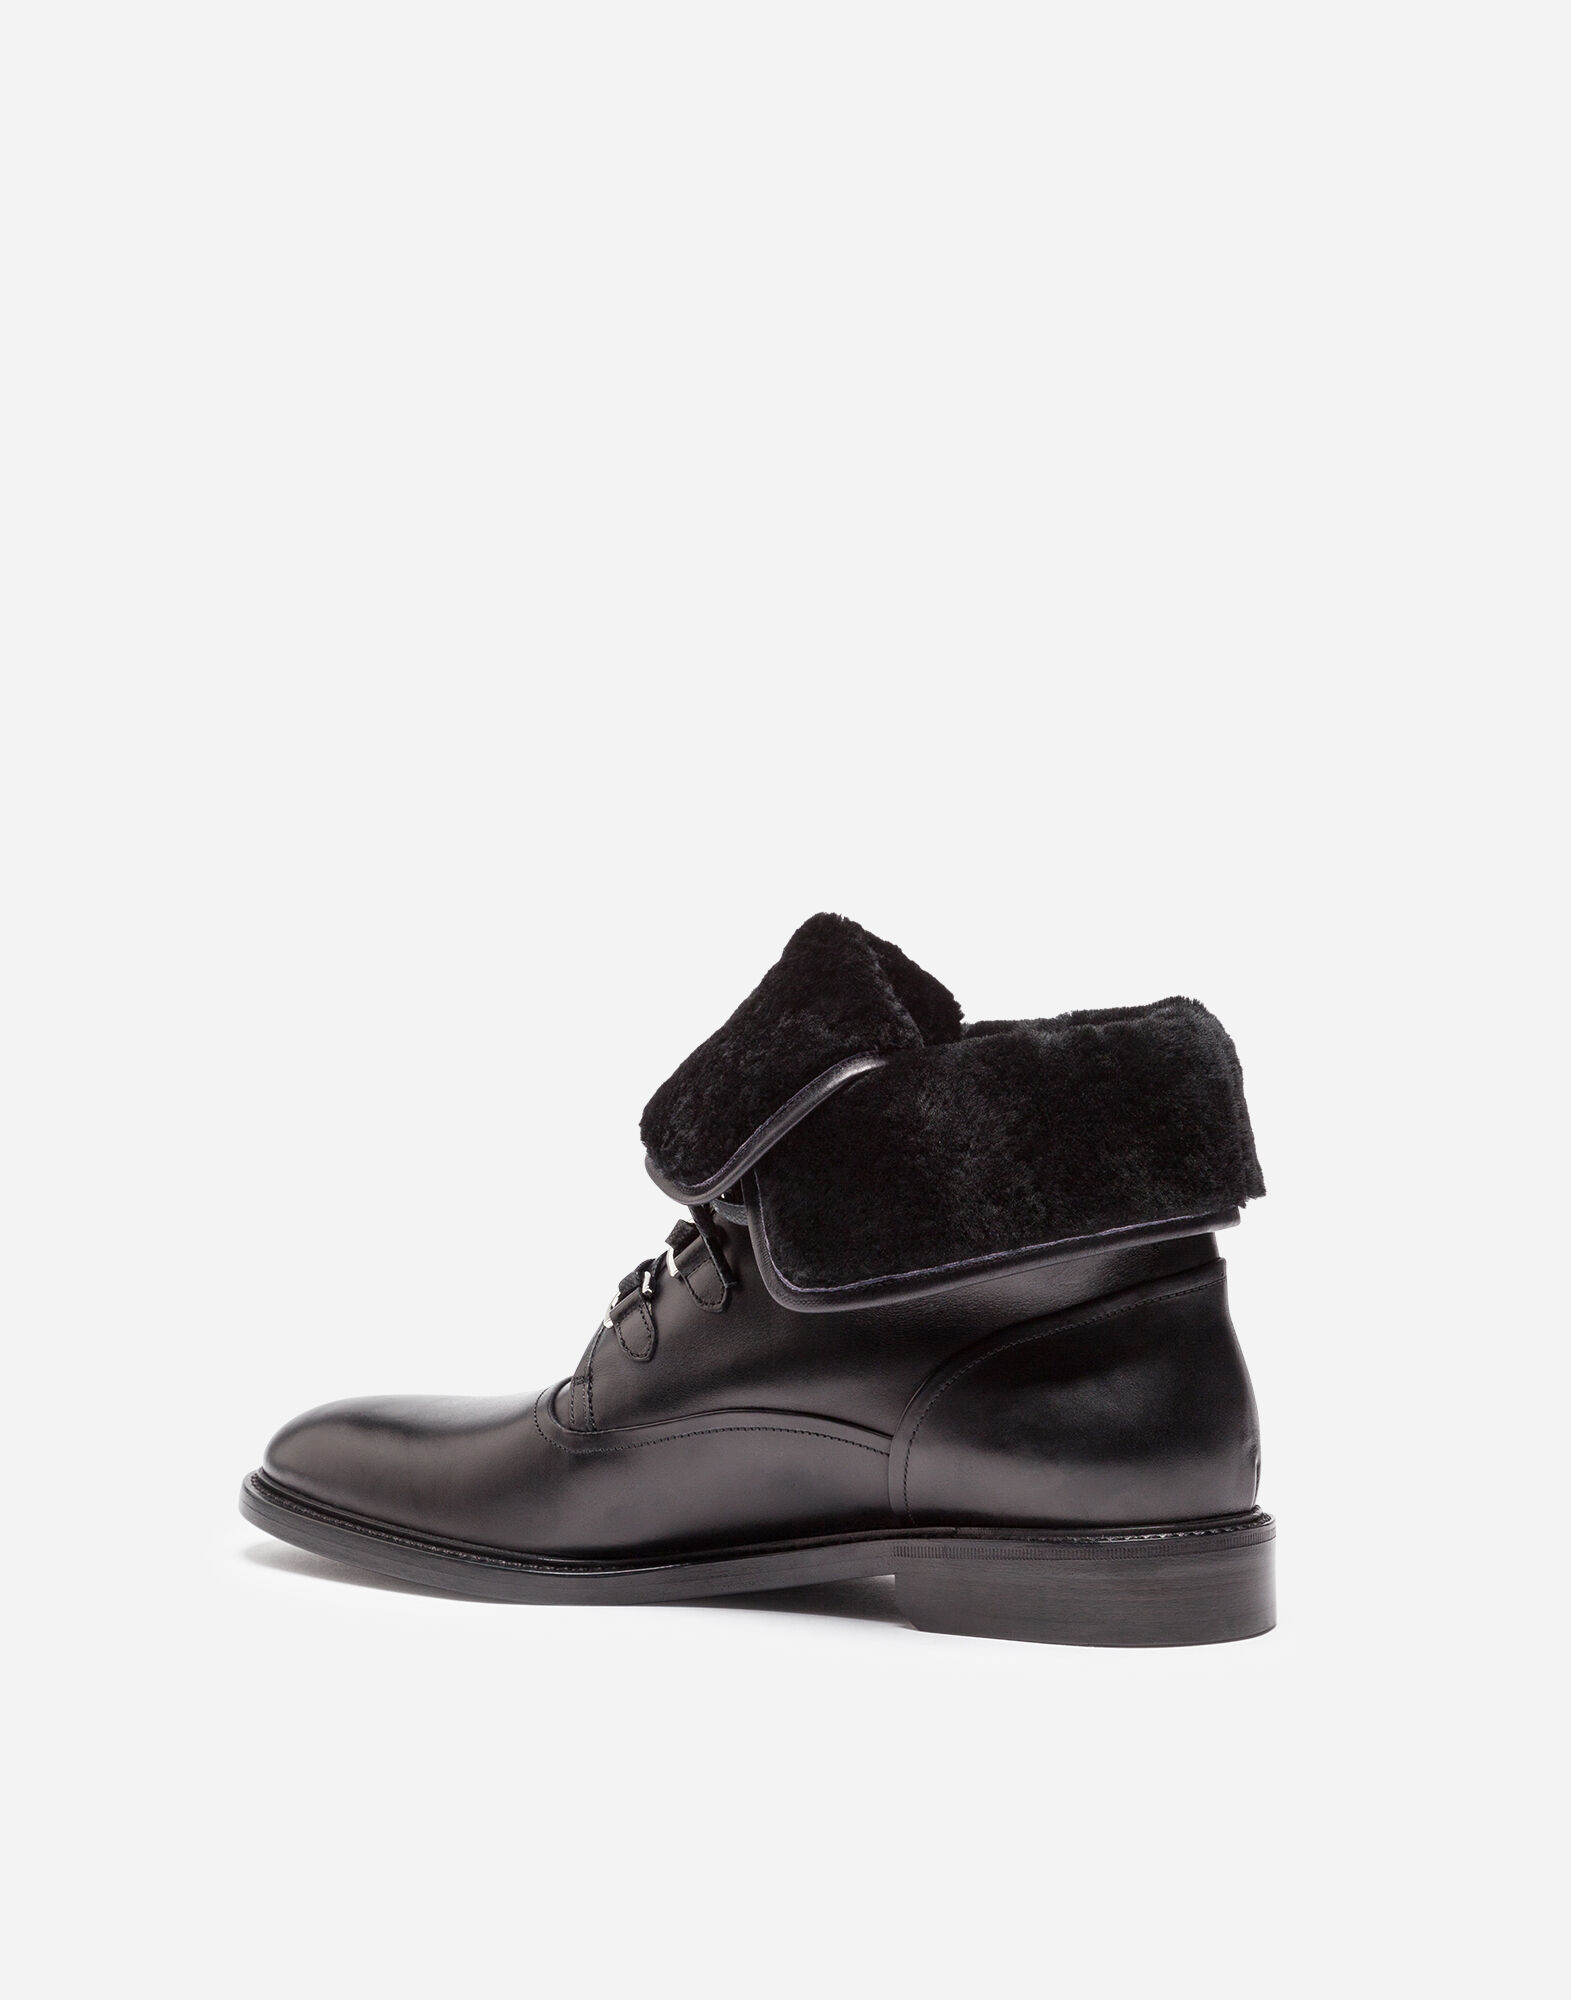 LEATHER ANKLE BOOTS WITH A SHEEPSKIN LINING